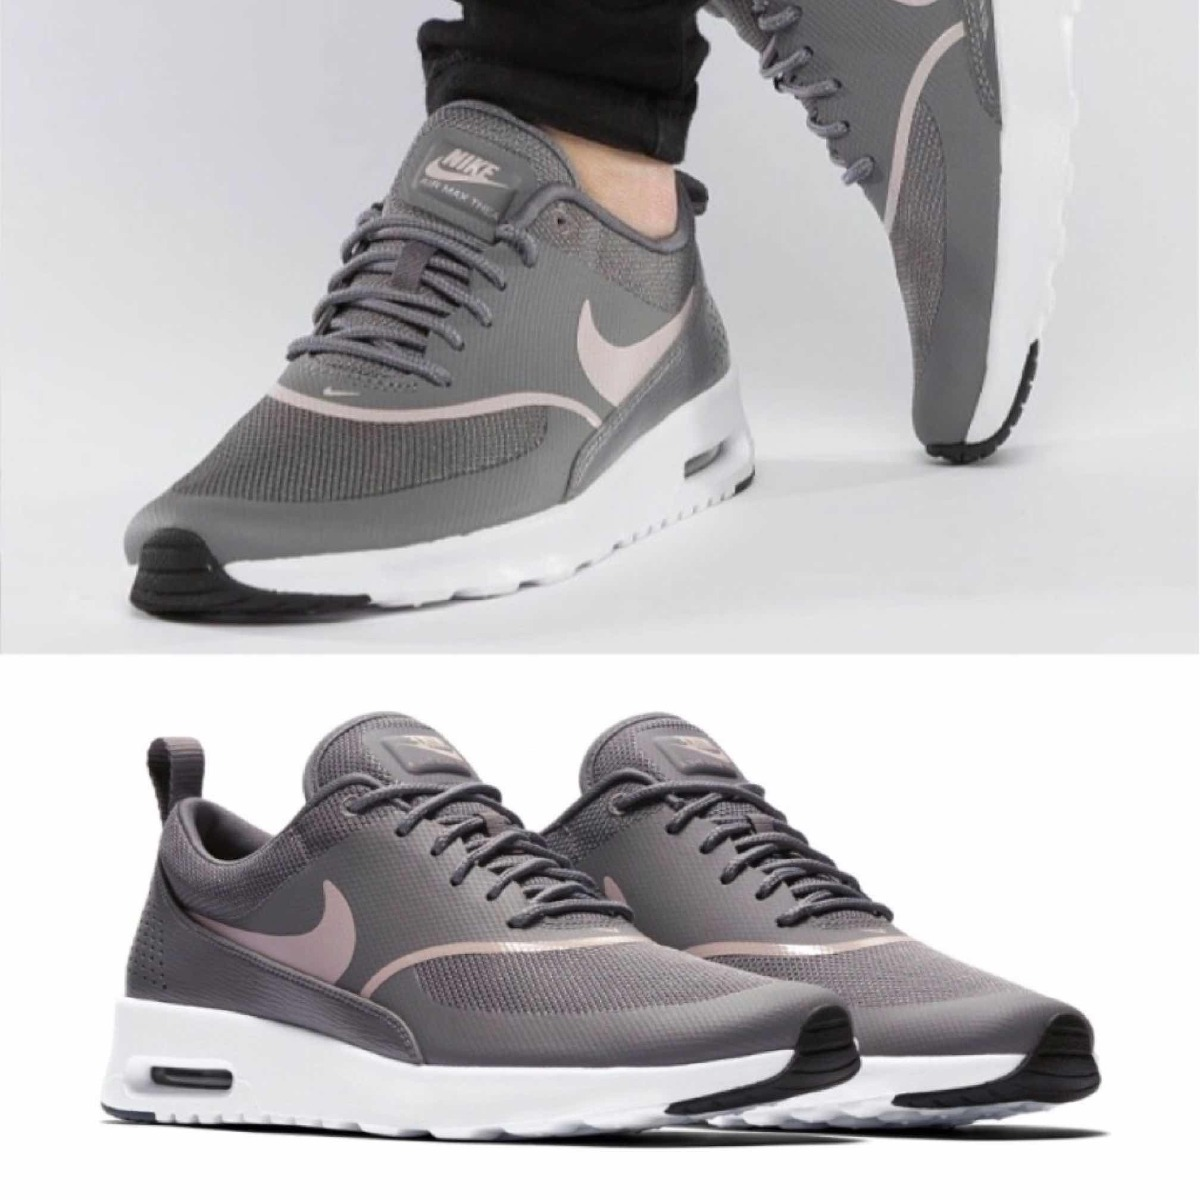 huge selection of half price official store W Tenis Nike Air Max Thea Gris C/ Rosa #5.5 Mx 100% Original